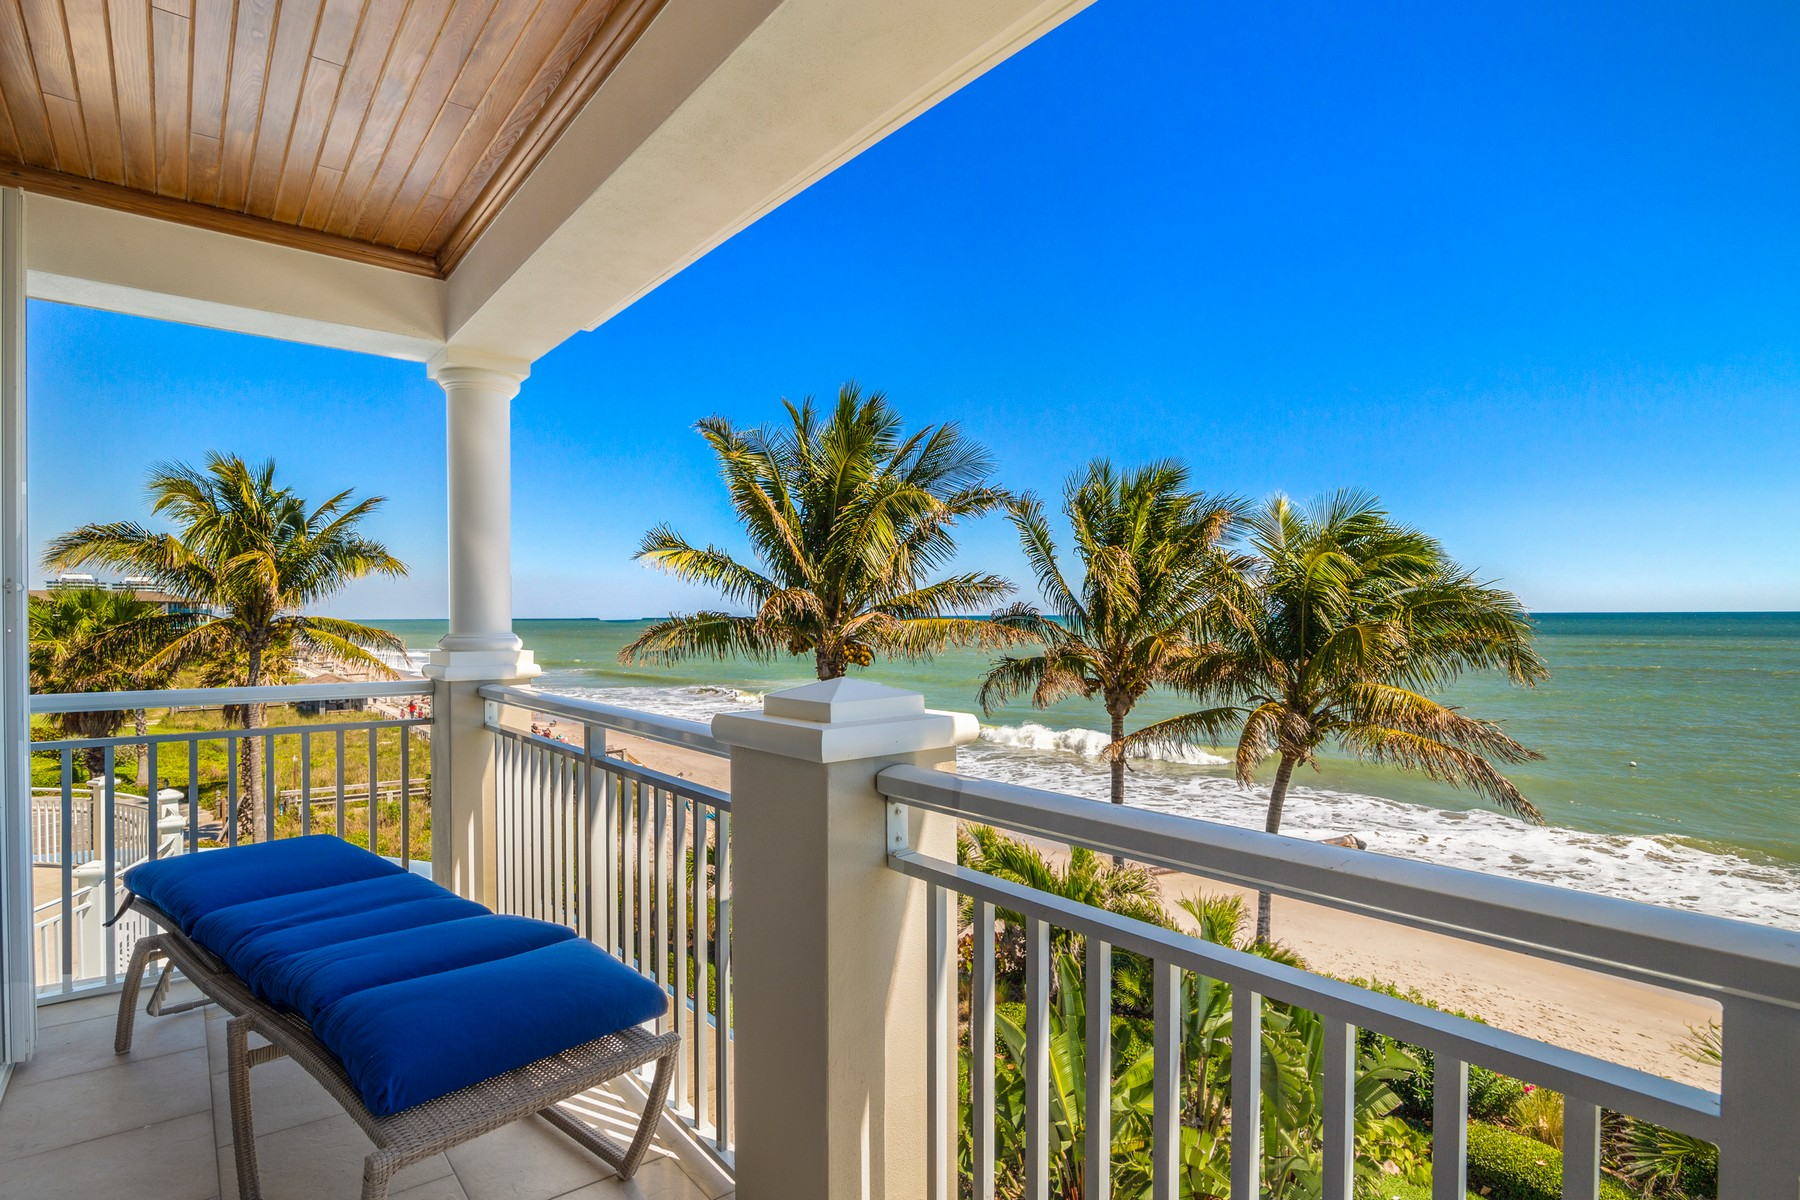 Property のために 売買 アット Elegant Oceanfront Townhome Right in Town 1010 Easter Lily Ln #105 Vero Beach, フロリダ 32963 アメリカ